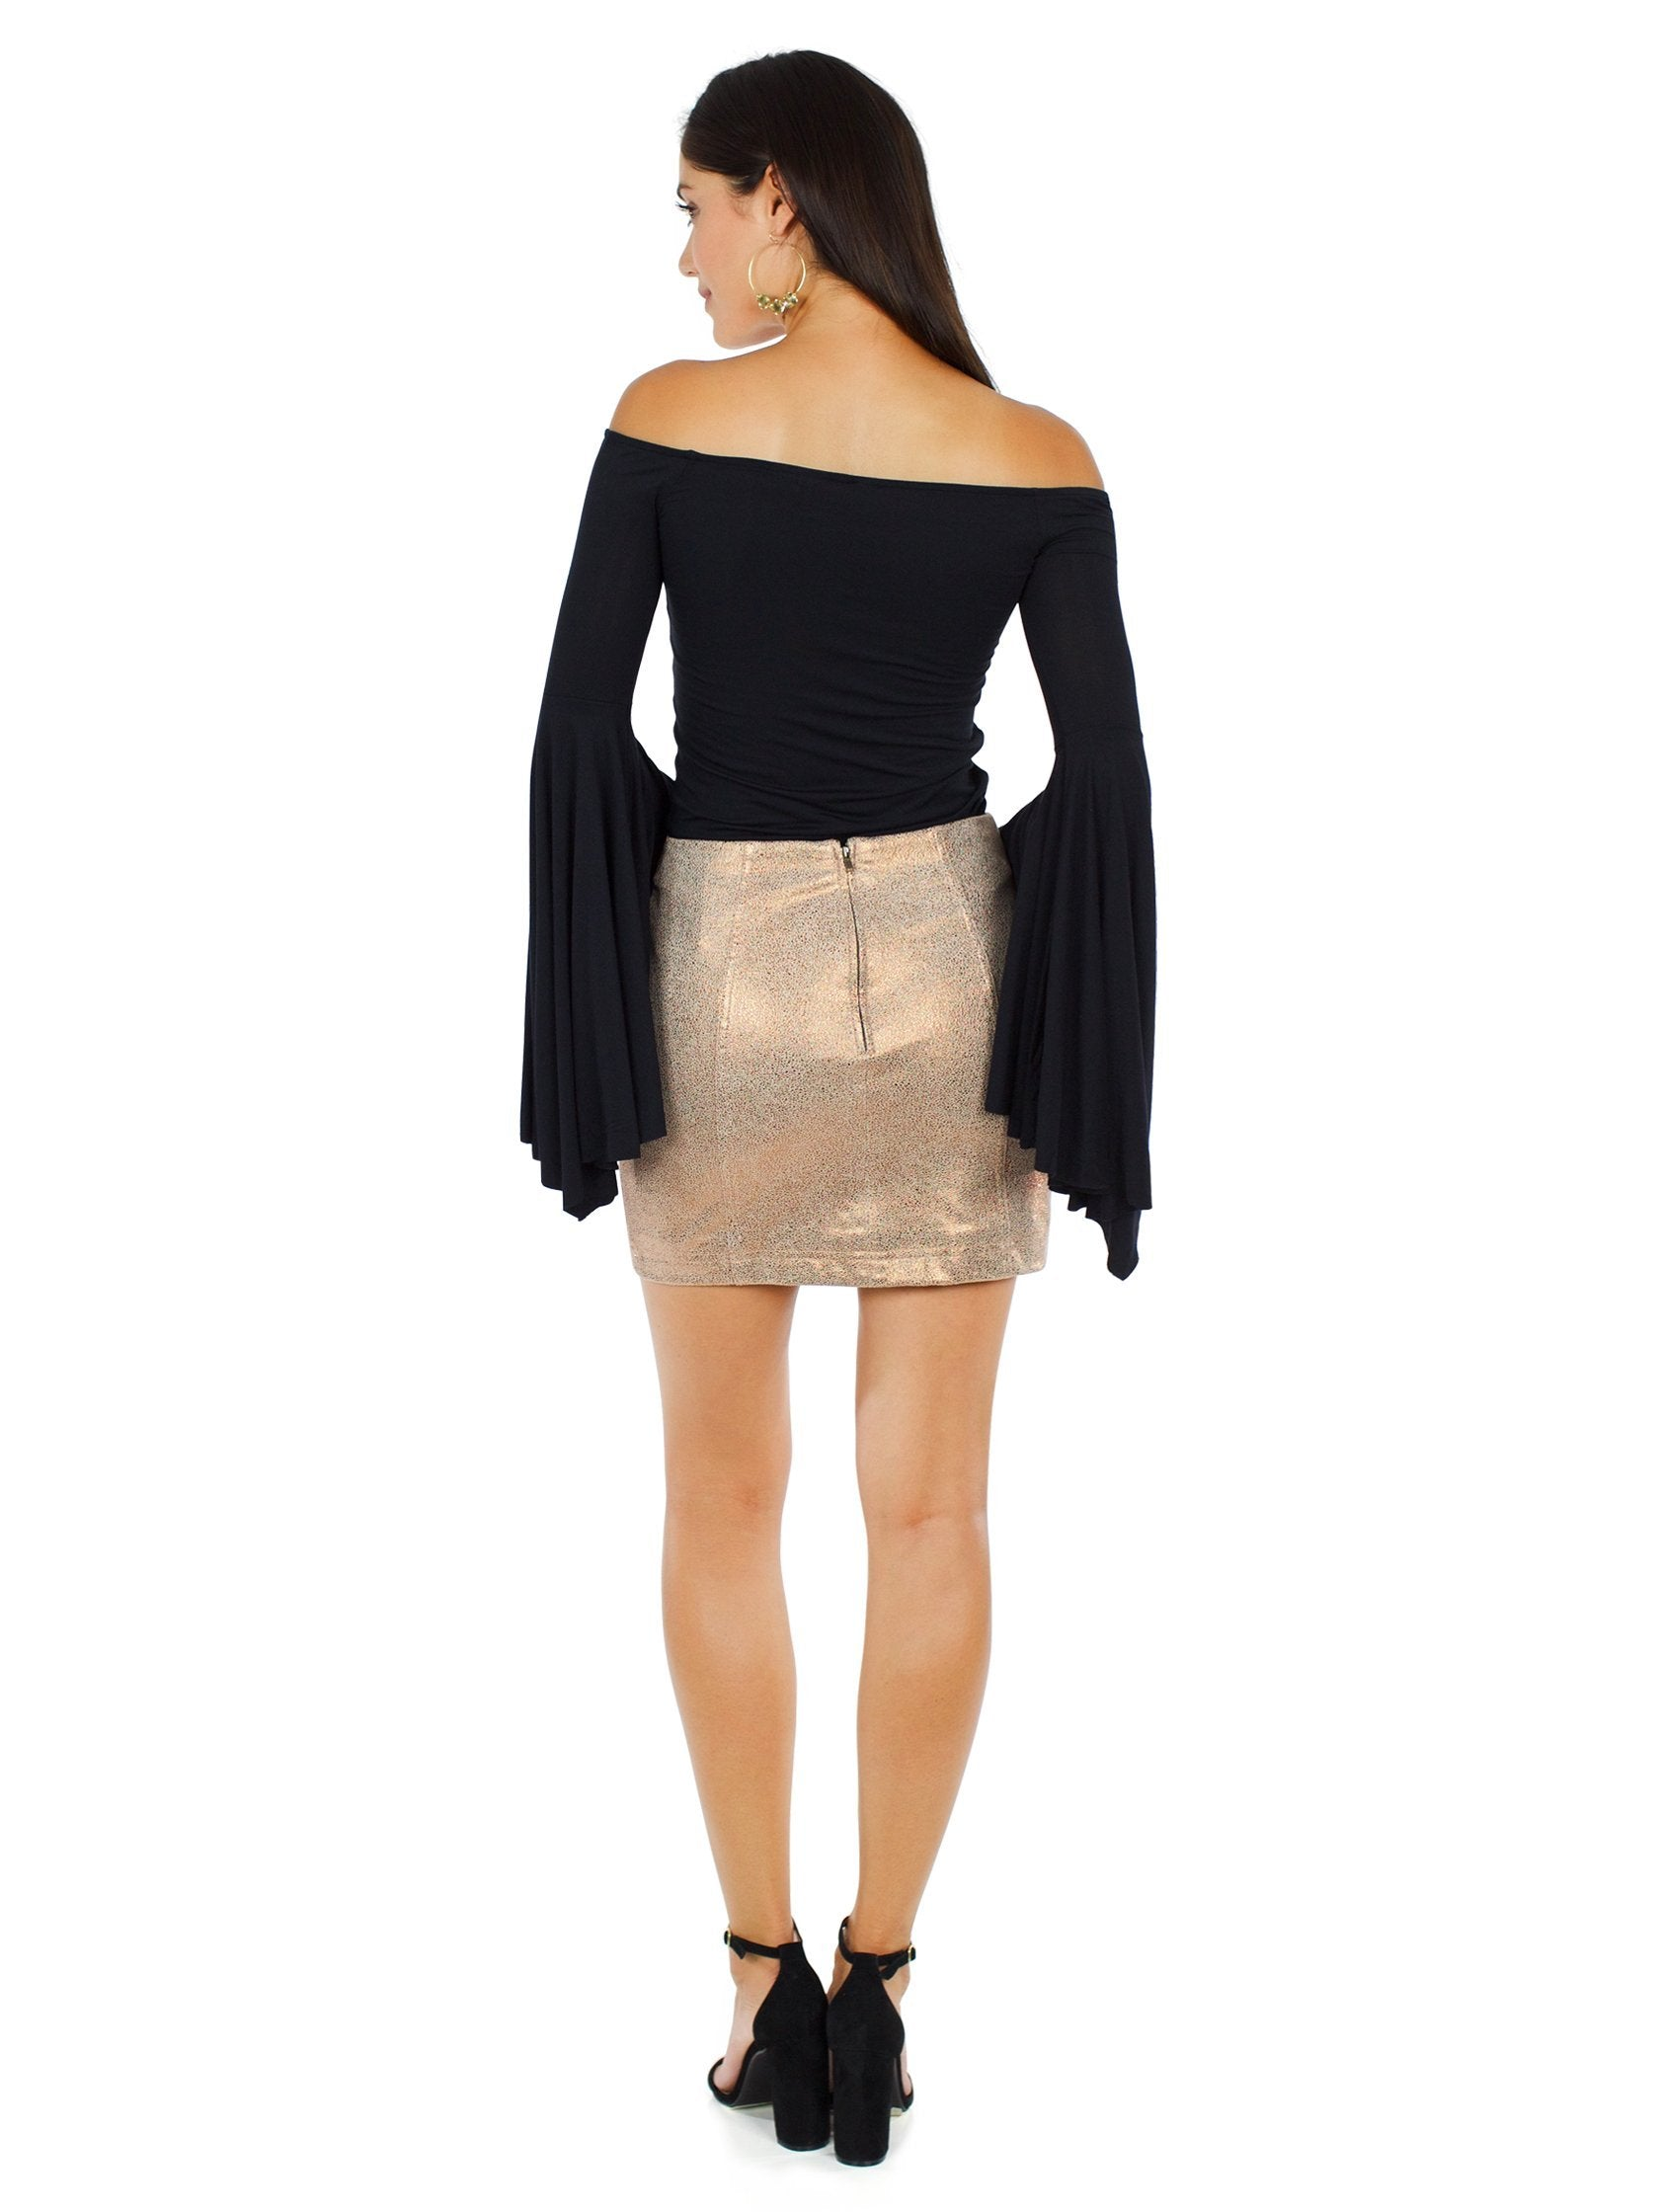 Women wearing a skirt rental from Free People called Modern Femme Metallic Rose Gold Suede Mini Skirt